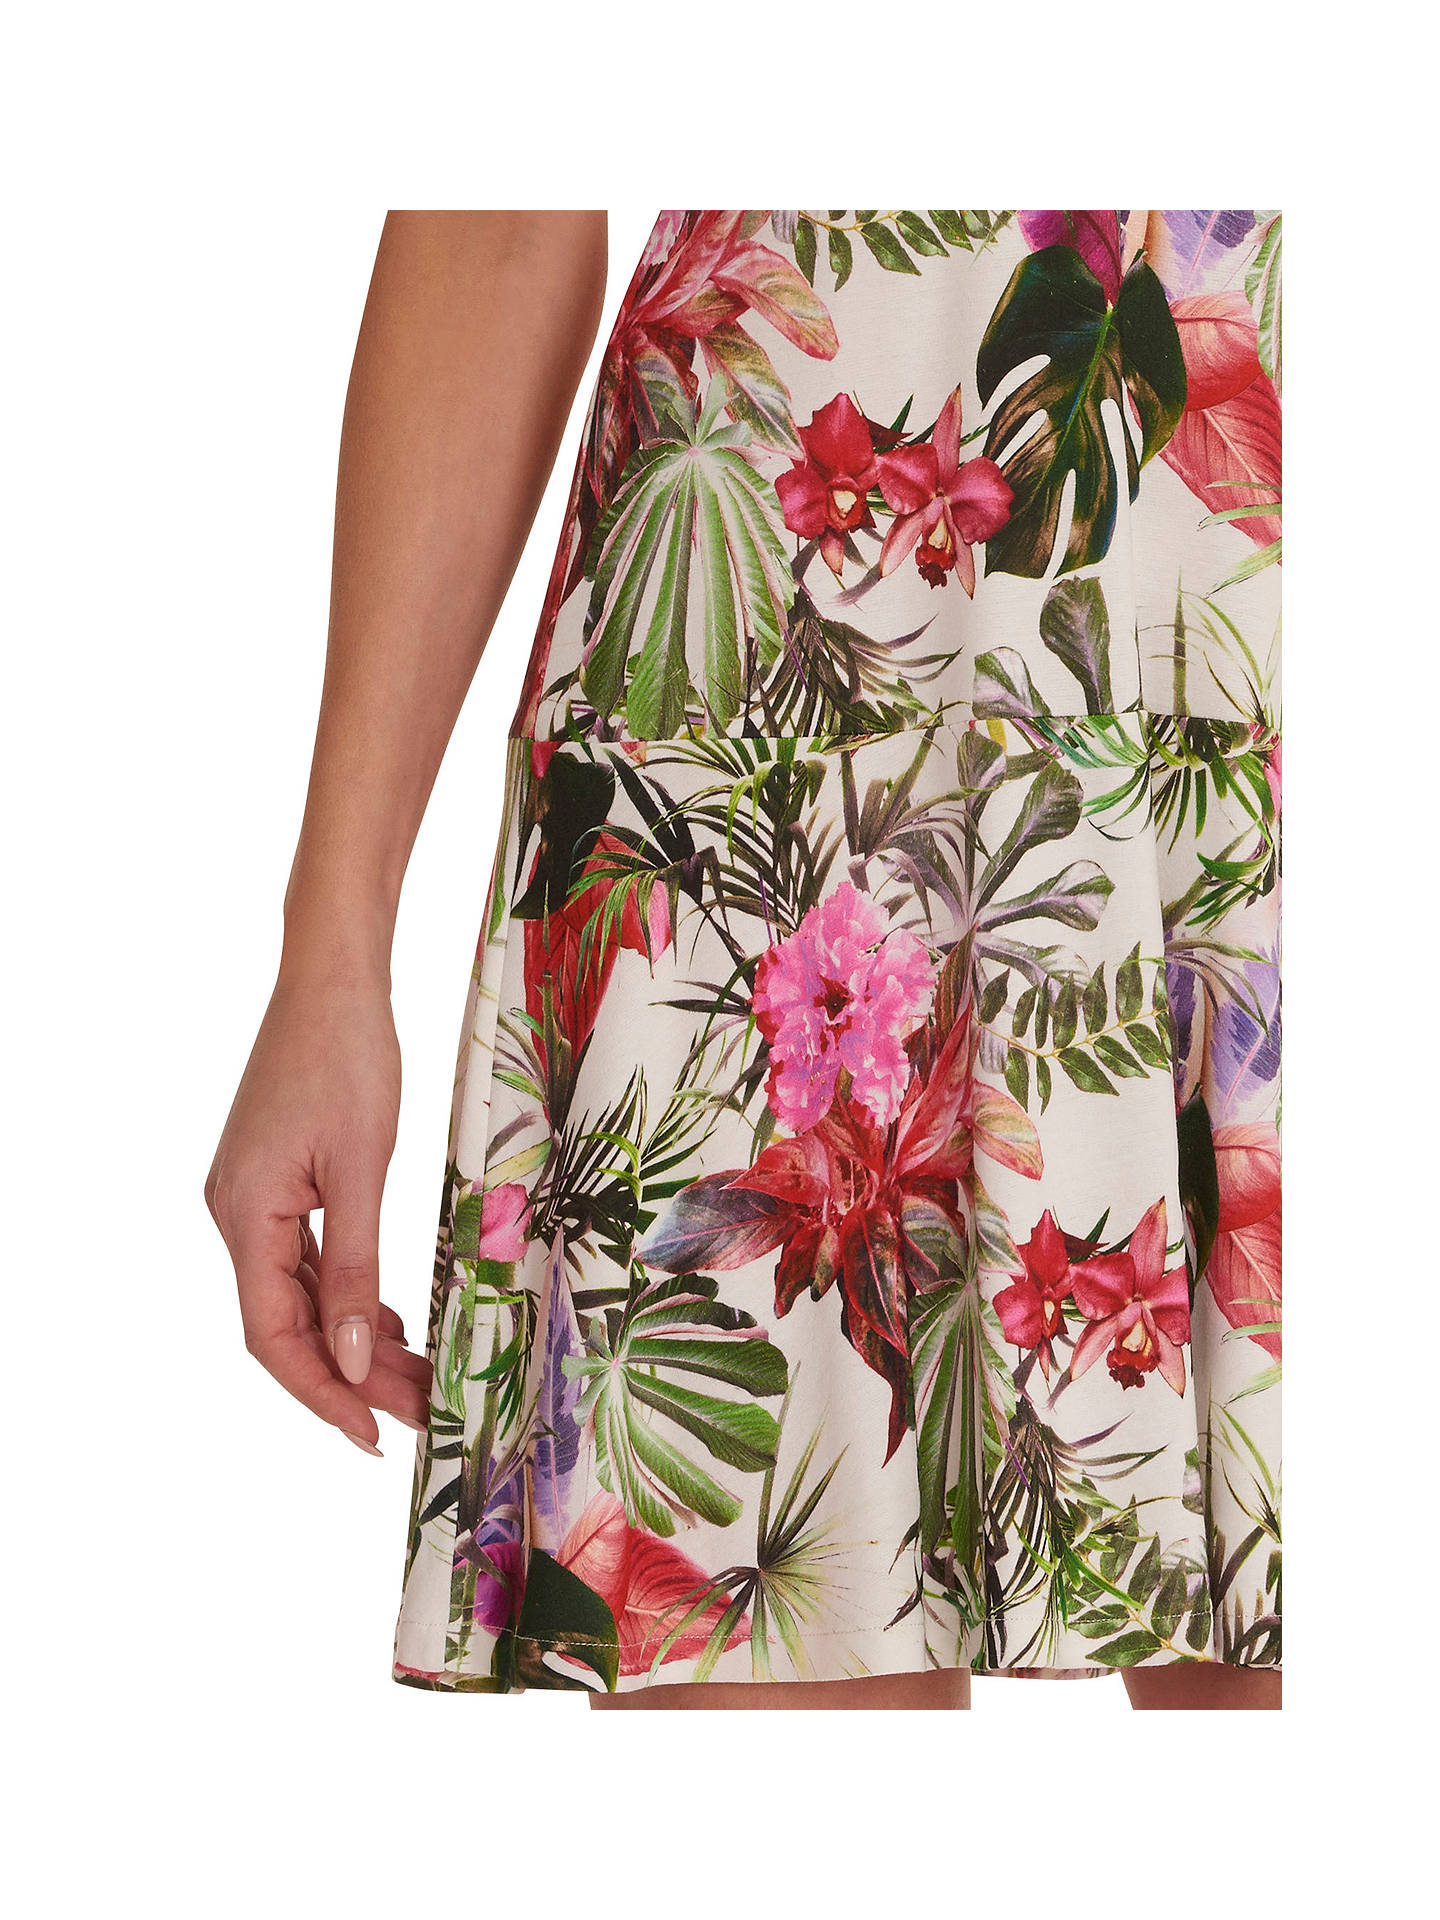 BuyBetty Barclay Floral Print Dress, Cream/Red, 12 Online at johnlewis.com